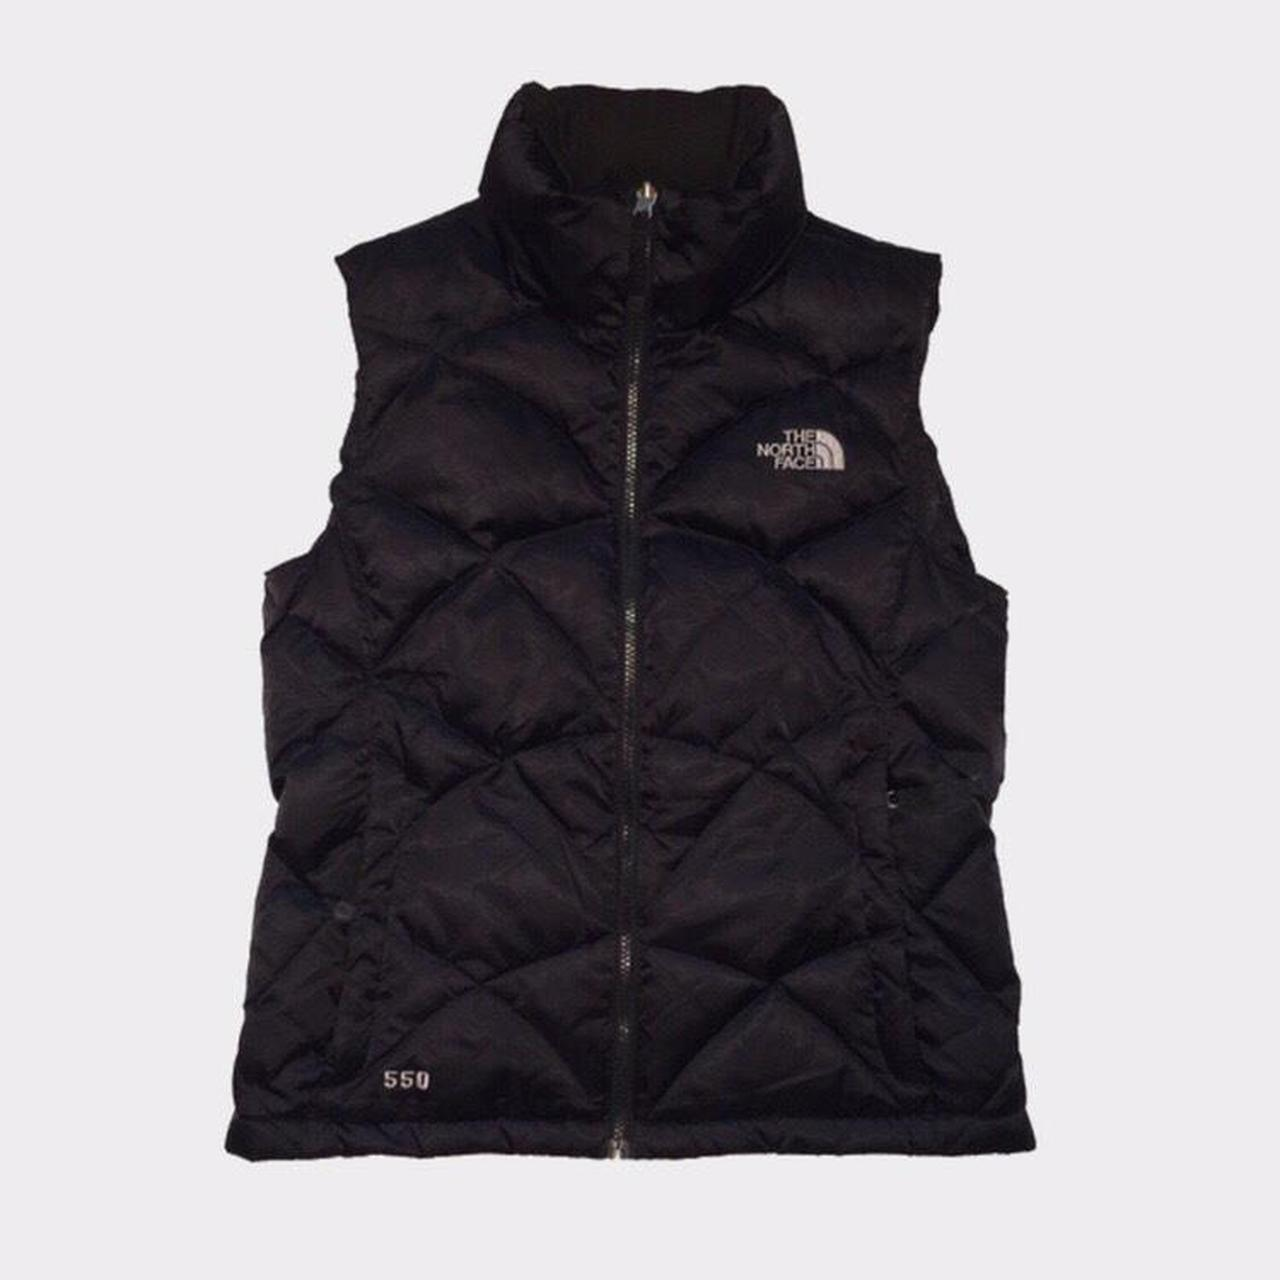 Product Image 1 - The North Face Puffer Vest